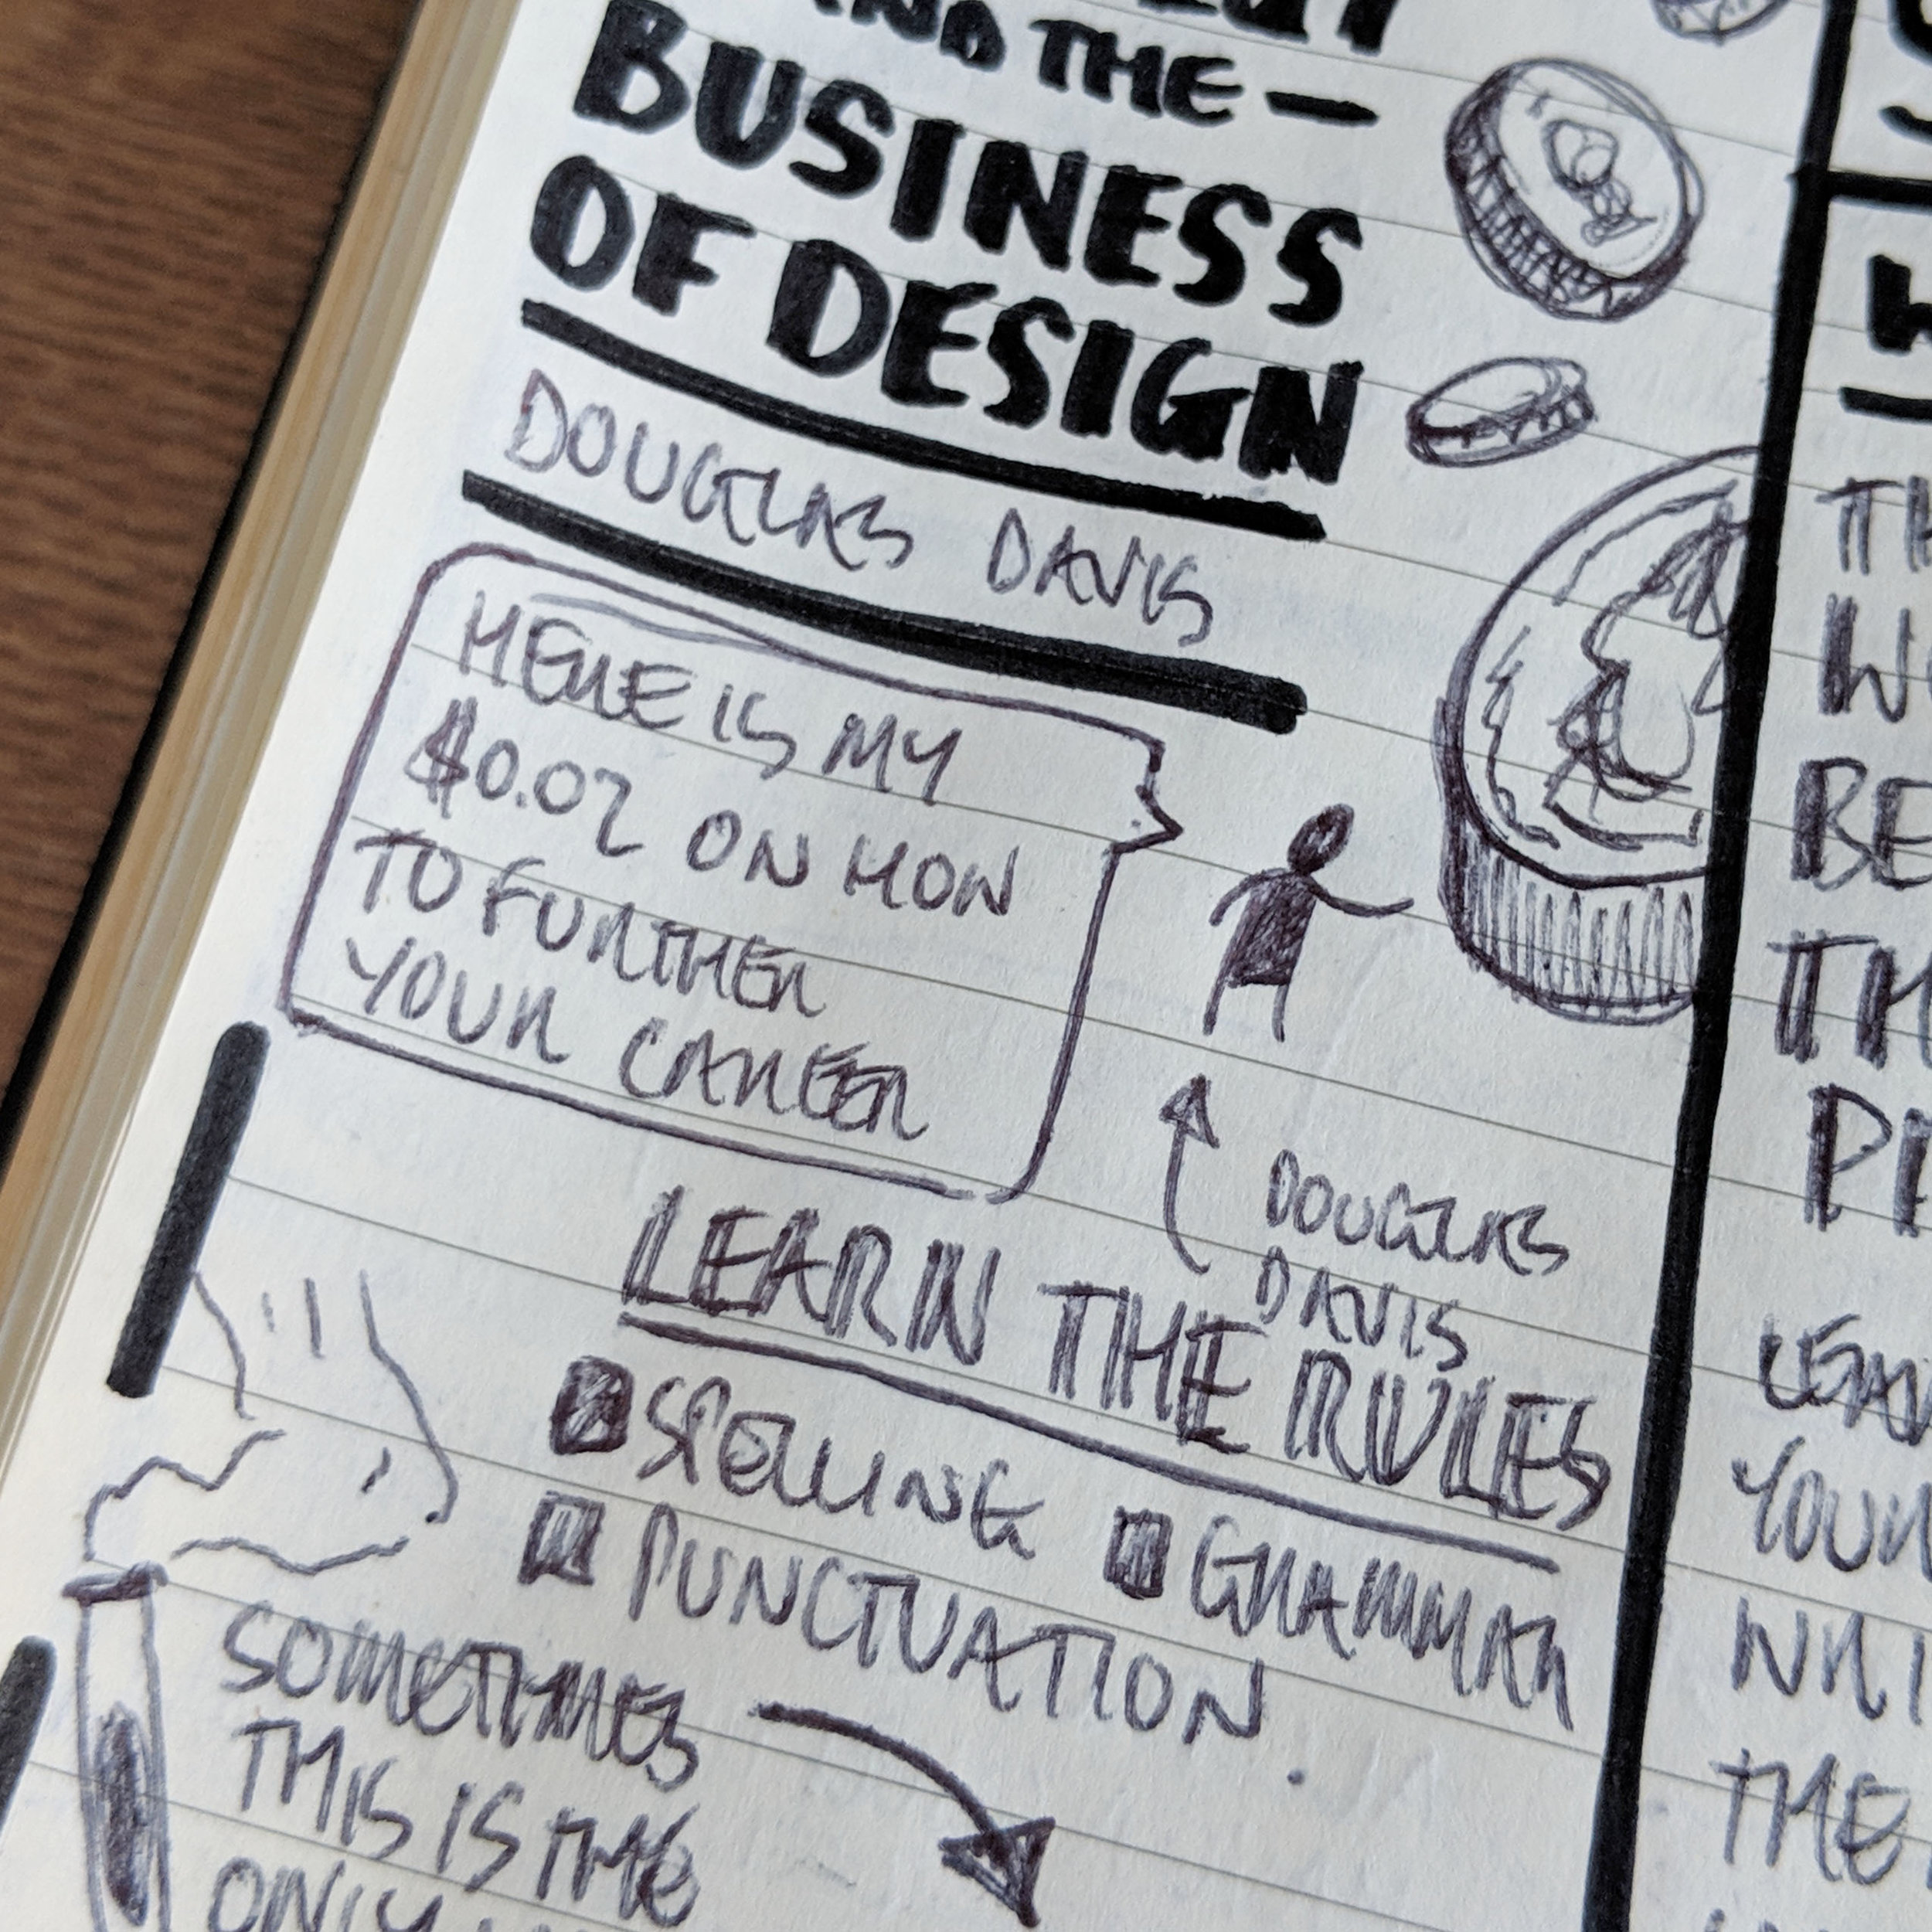 CreativeStrategyAndTheBusinessOfDesign_Part24.2.jpg